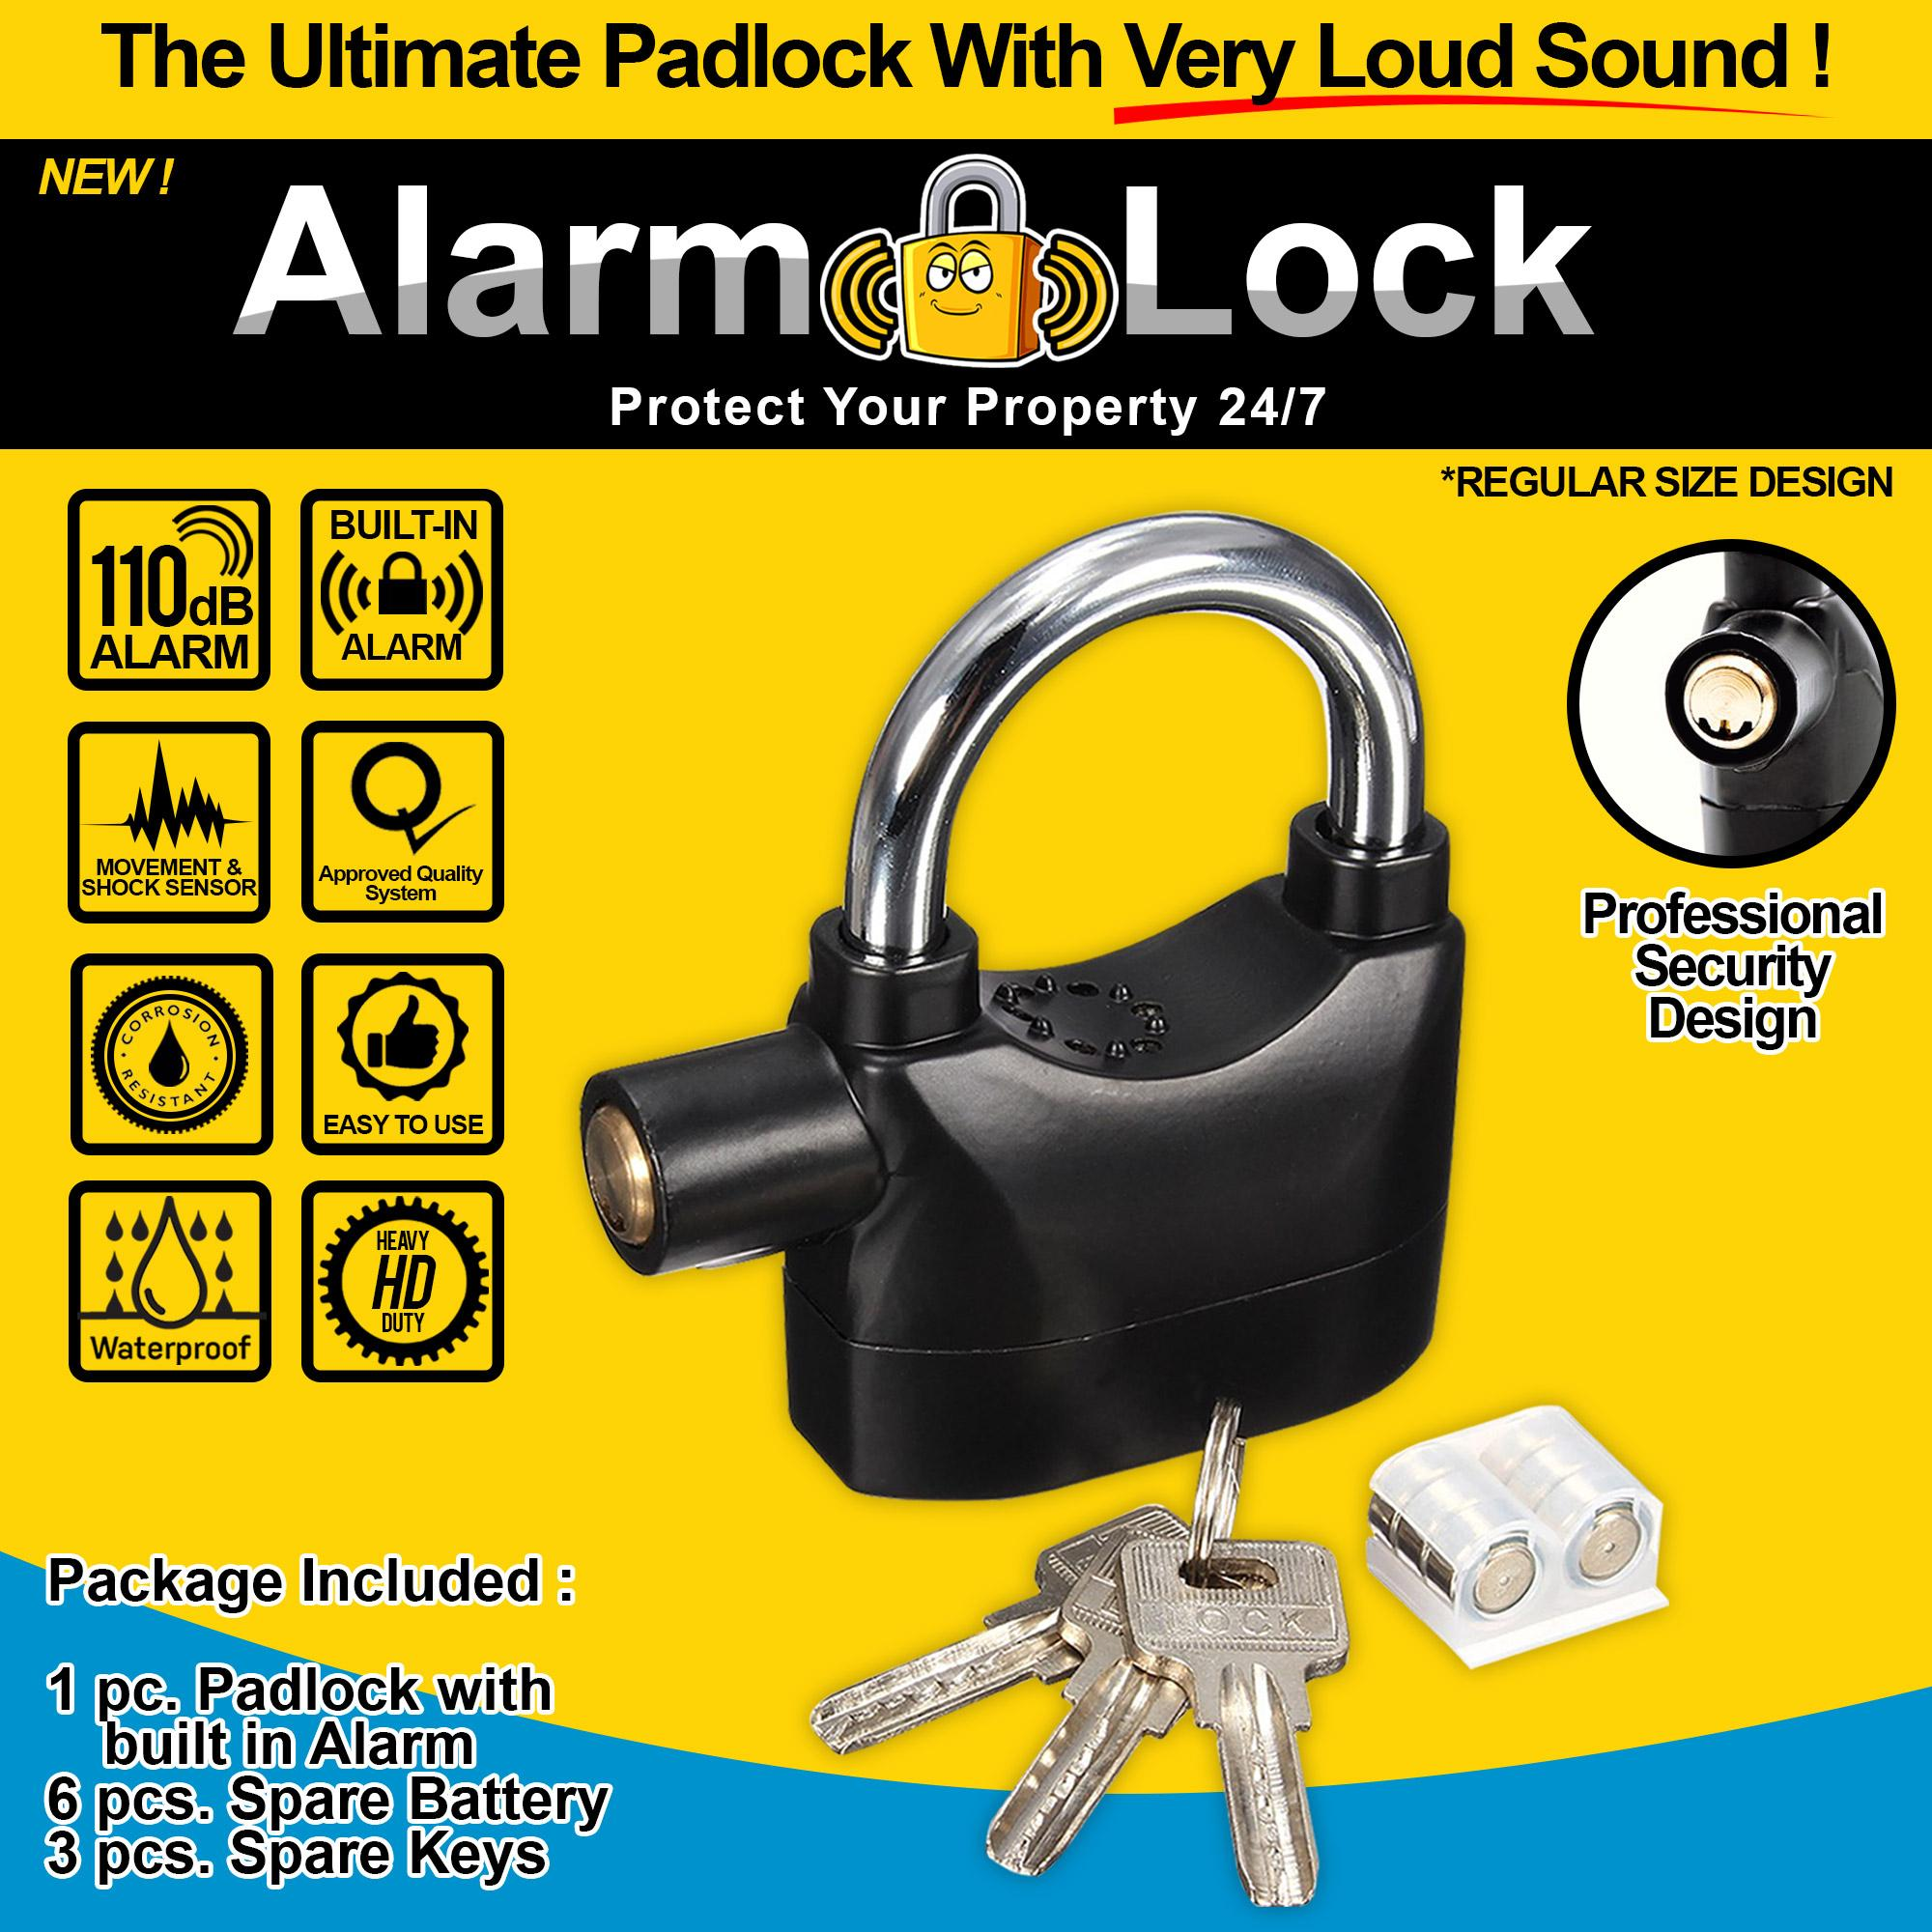 Door Lock For Sale Locks Prices Brands Review In How To Build Electronic Security Key New High Quality Loud Siren Alarm Anti Theft System Padlock 110db Hardened Steel Great